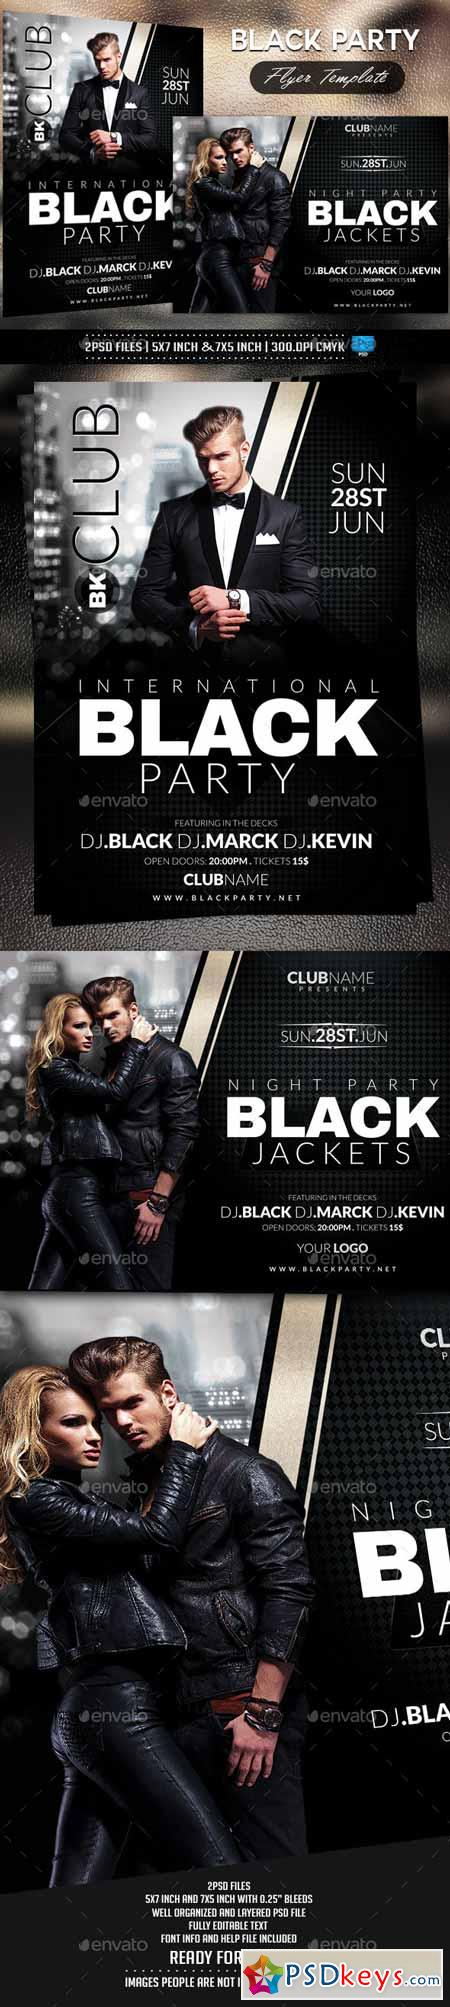 Black Party Flyer Template 10428223